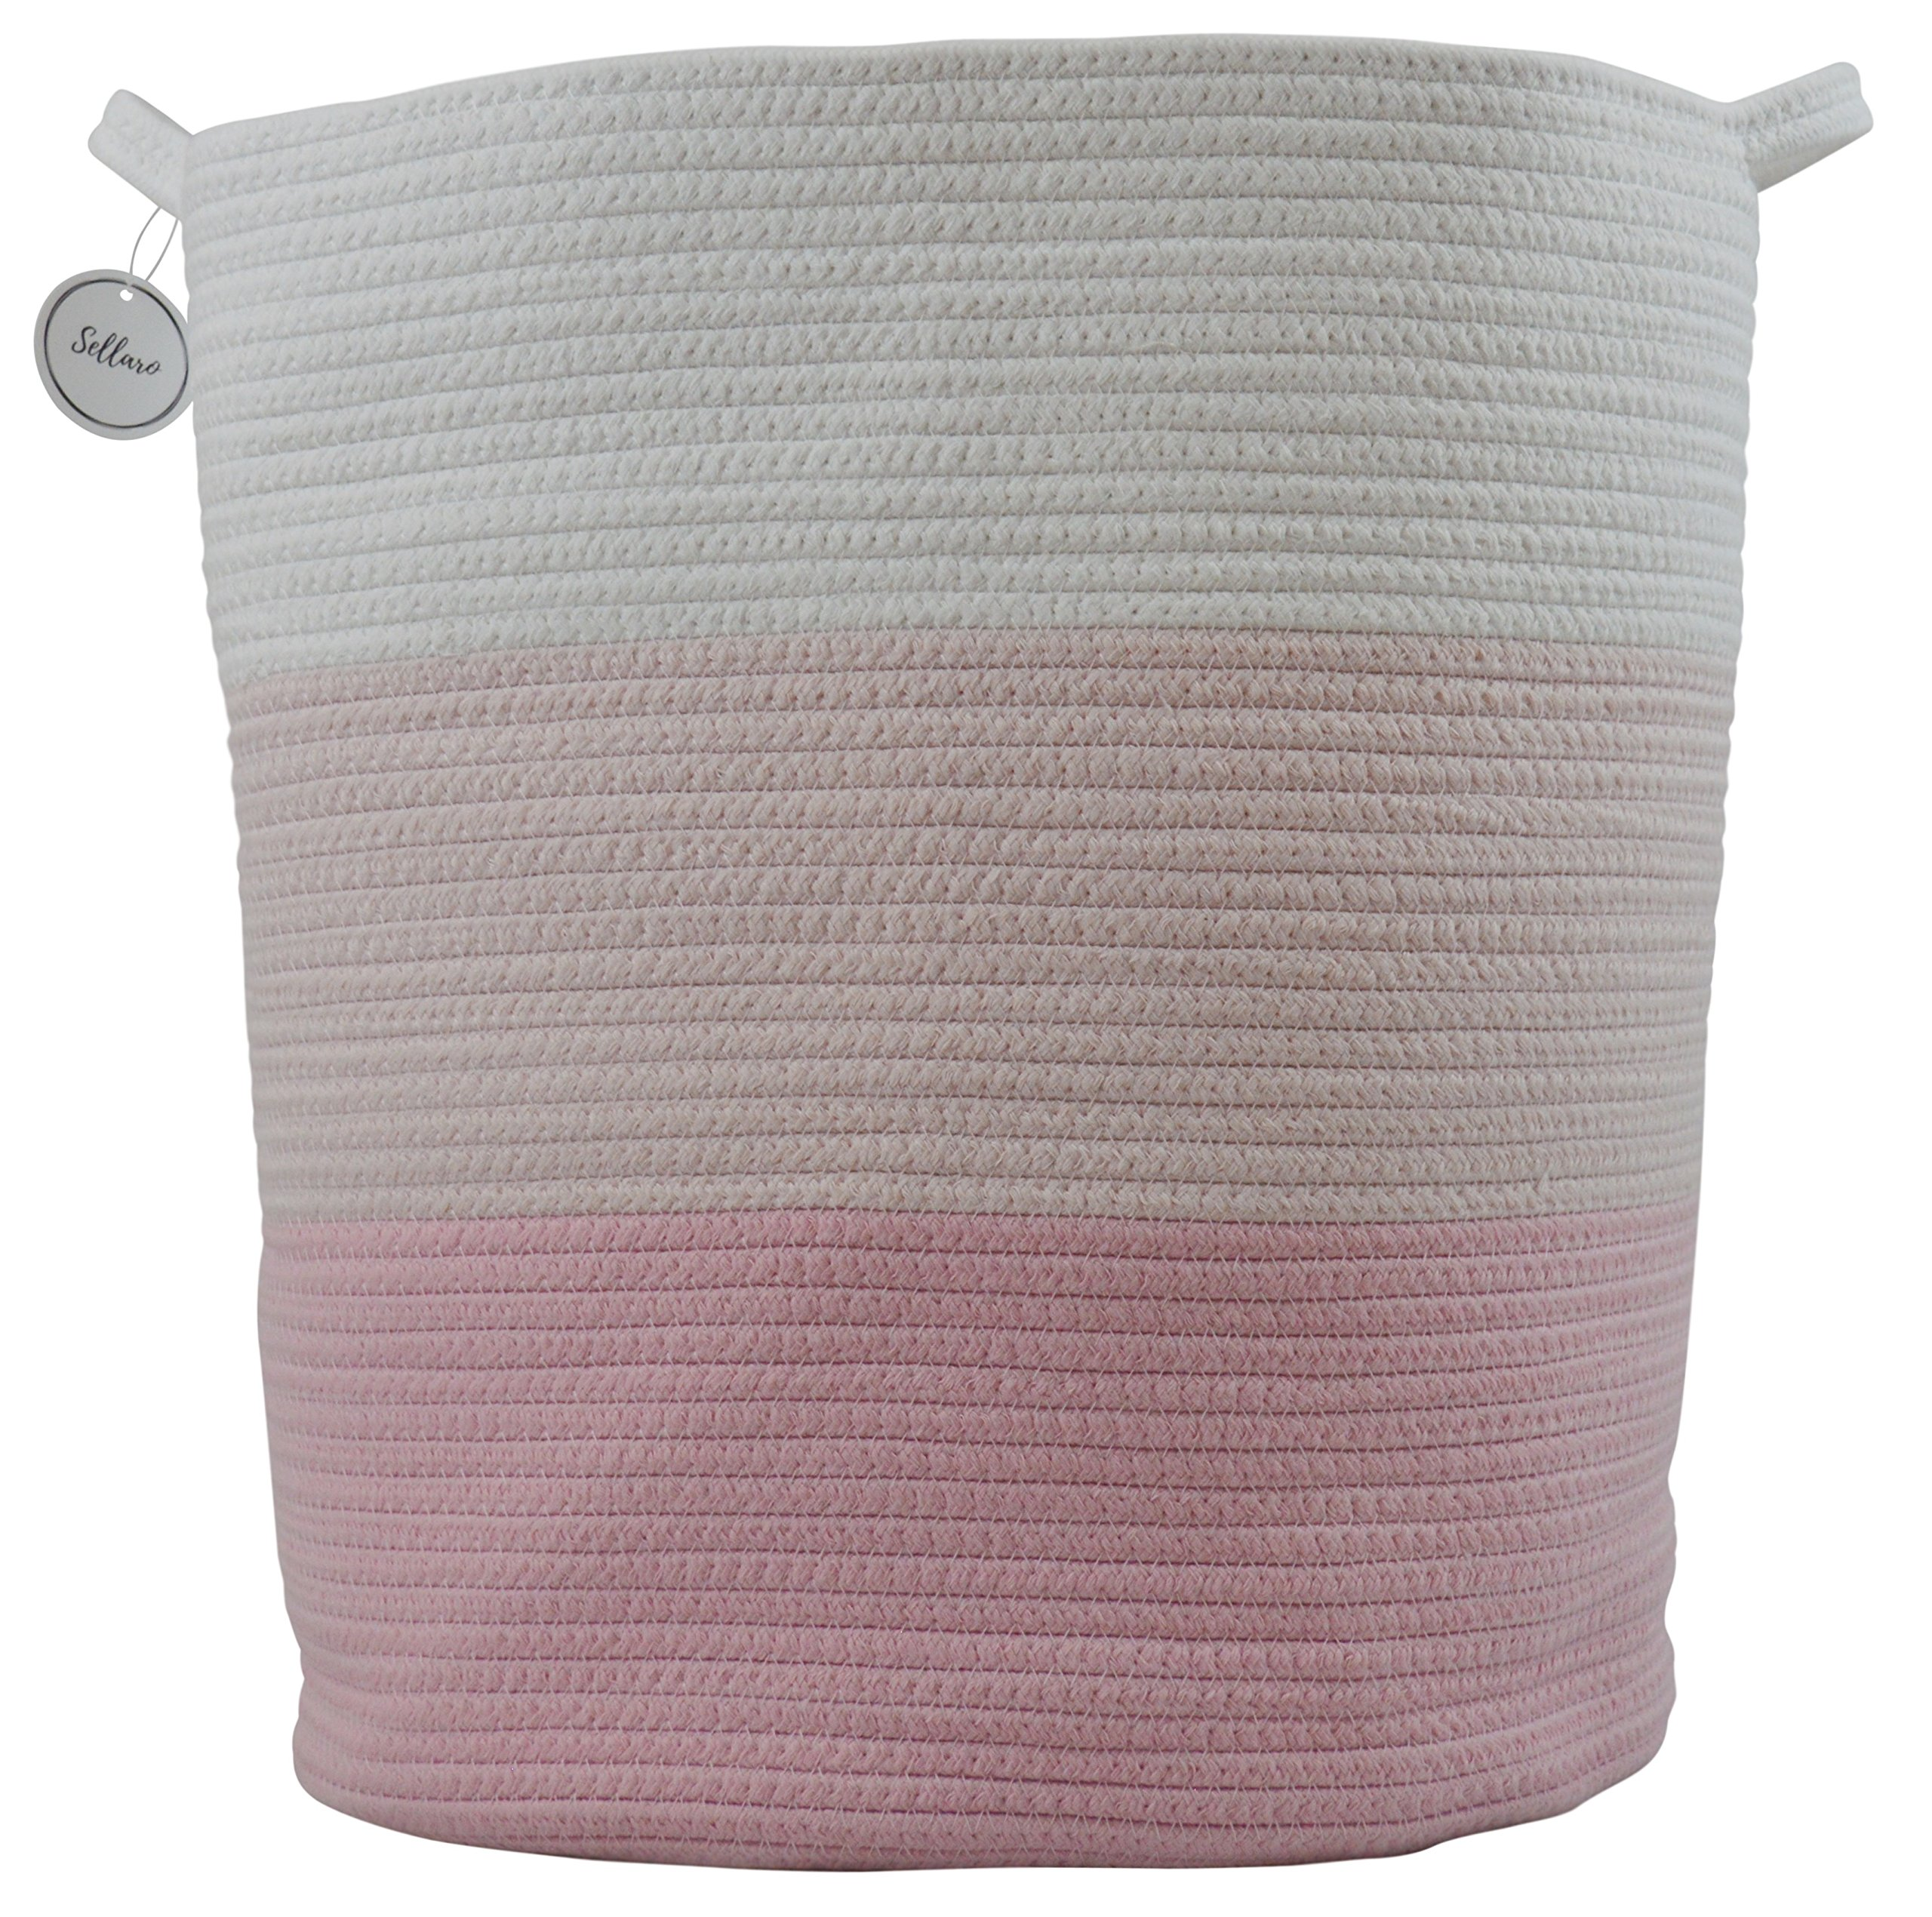 Extra Large Cotton Rope Basket – Baby Nursery Hamper, Nursery Décor and Storage, Toy Organizer Bin | Storage Baskets for Laundry, Blankets, Towels, Toys, Bibs, Books in Pink for Girl